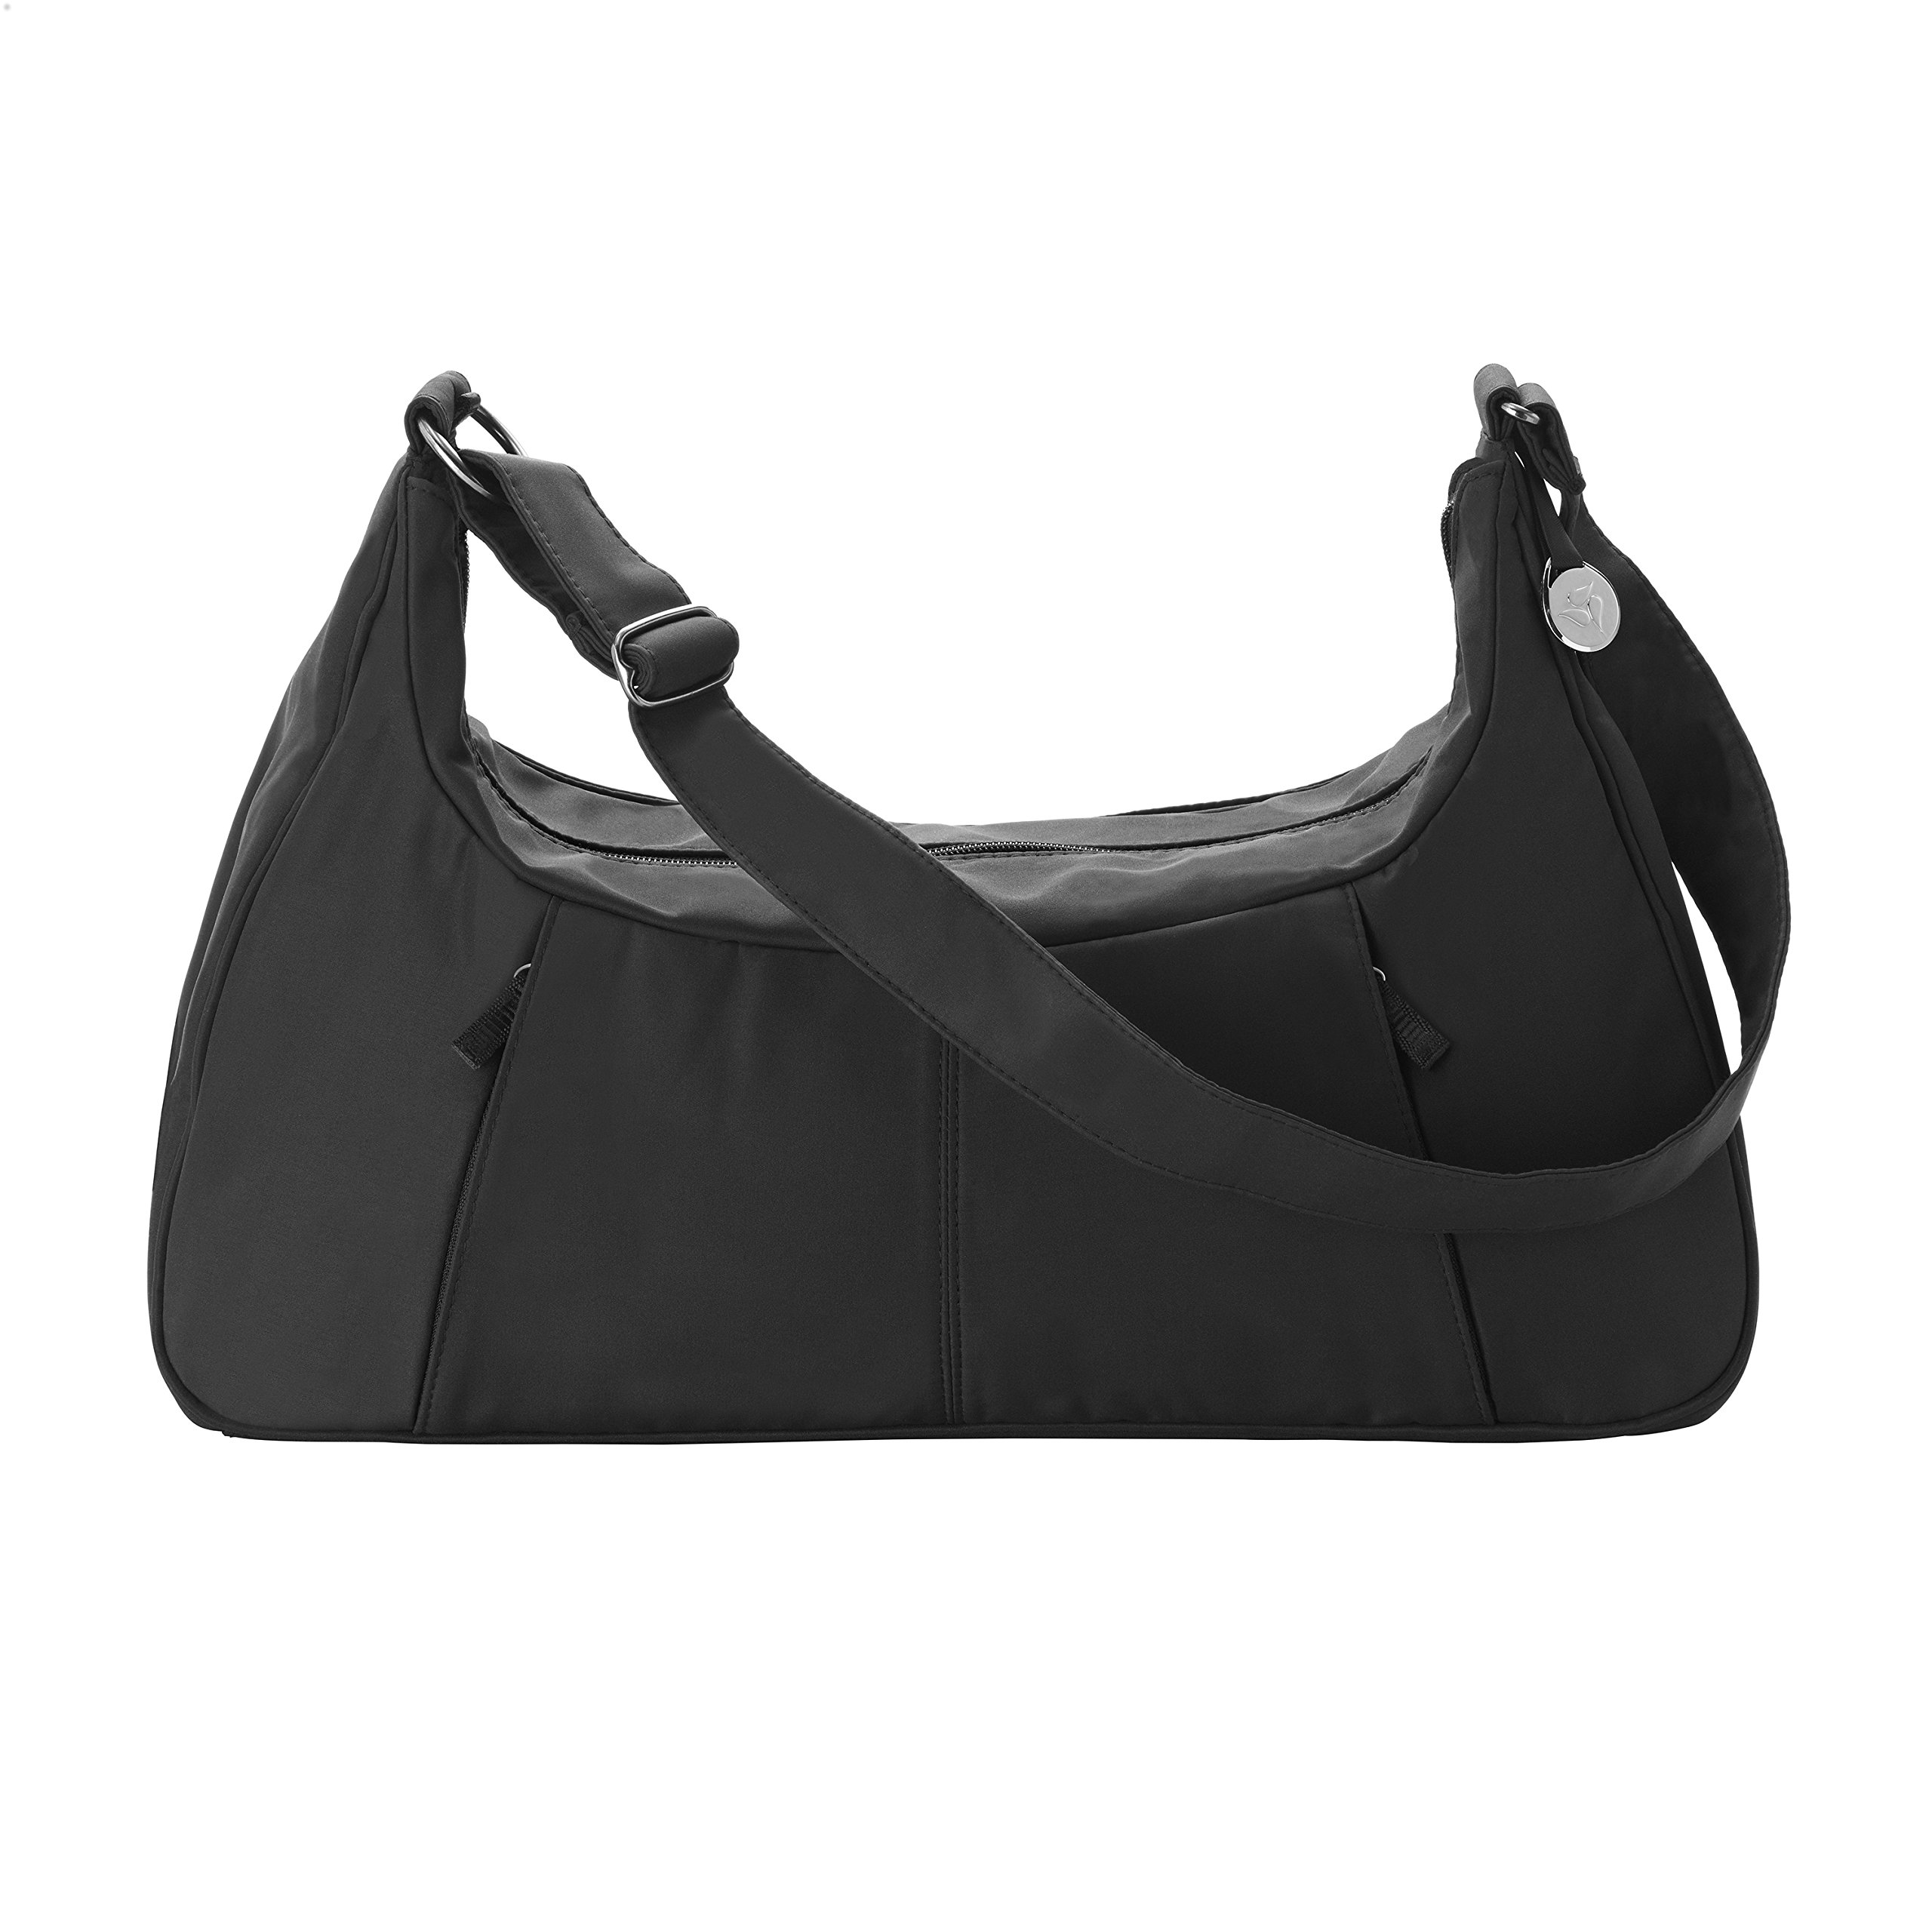 Medela Breast Pump Bag, Convenient Tote Bag for Your Sonata, Freestyle, or Pump in Style Advanced Breast Pump; Black; Water-Resistant Microfiber and Power Adapter Access Port